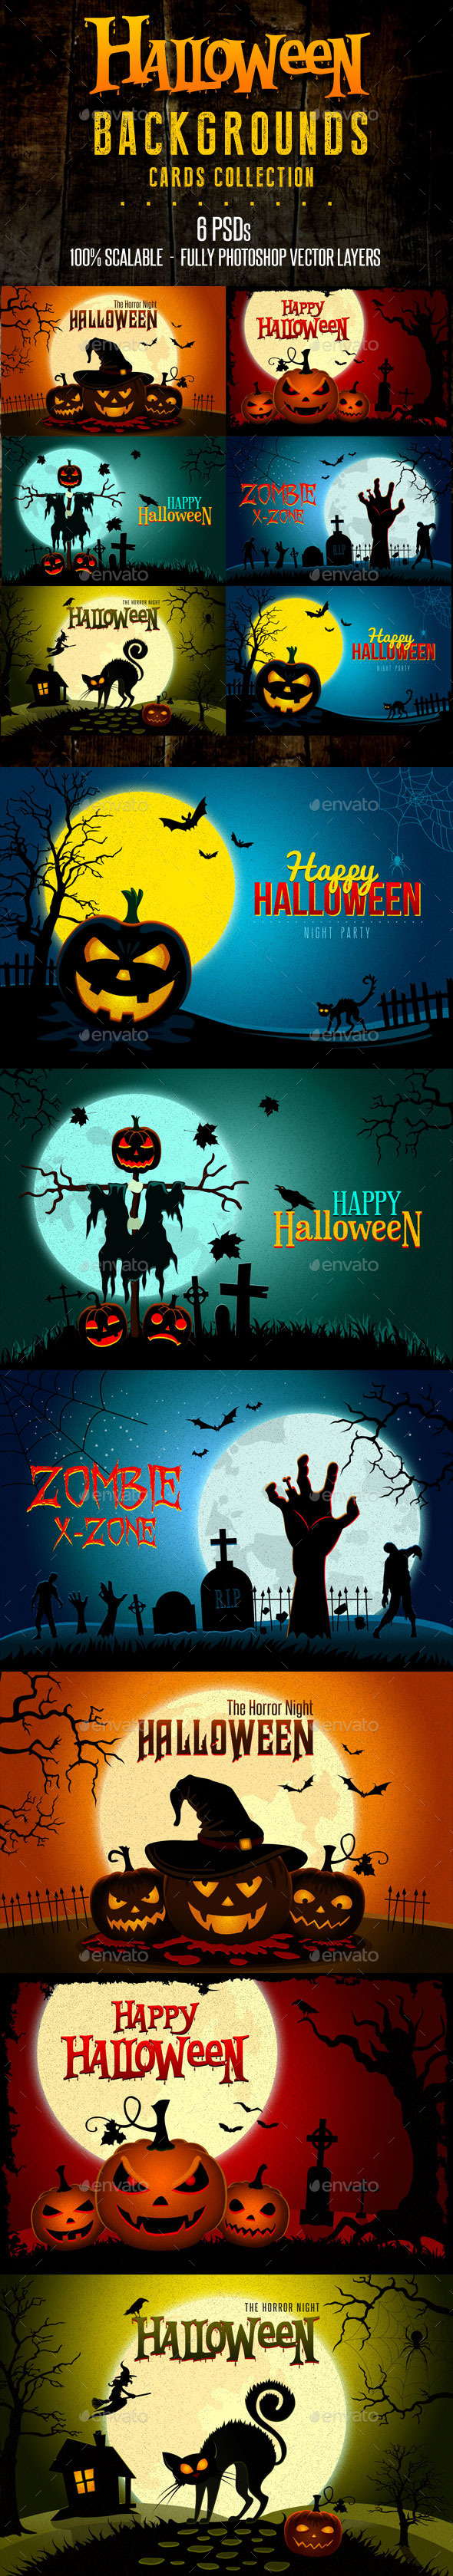 Halloween Landscapes Backgrounds Cards - Backgrounds Graphics